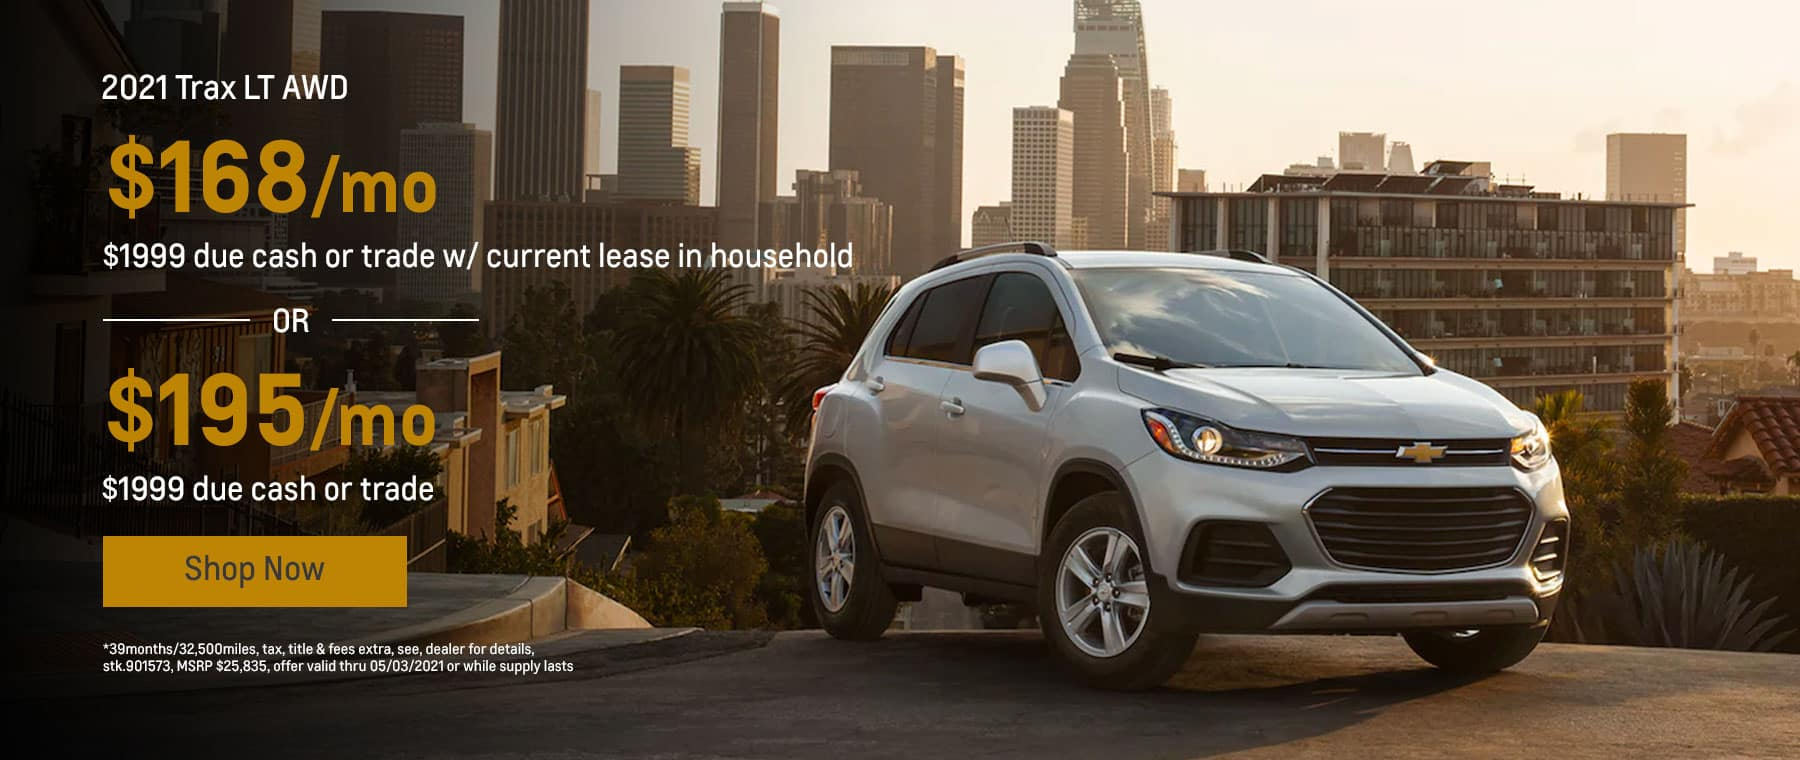 2021 Trax LT AWD, $168mo.* $1999 due cash or trade w/ current lease in household OR $195mo.* $1999 due cash or trade